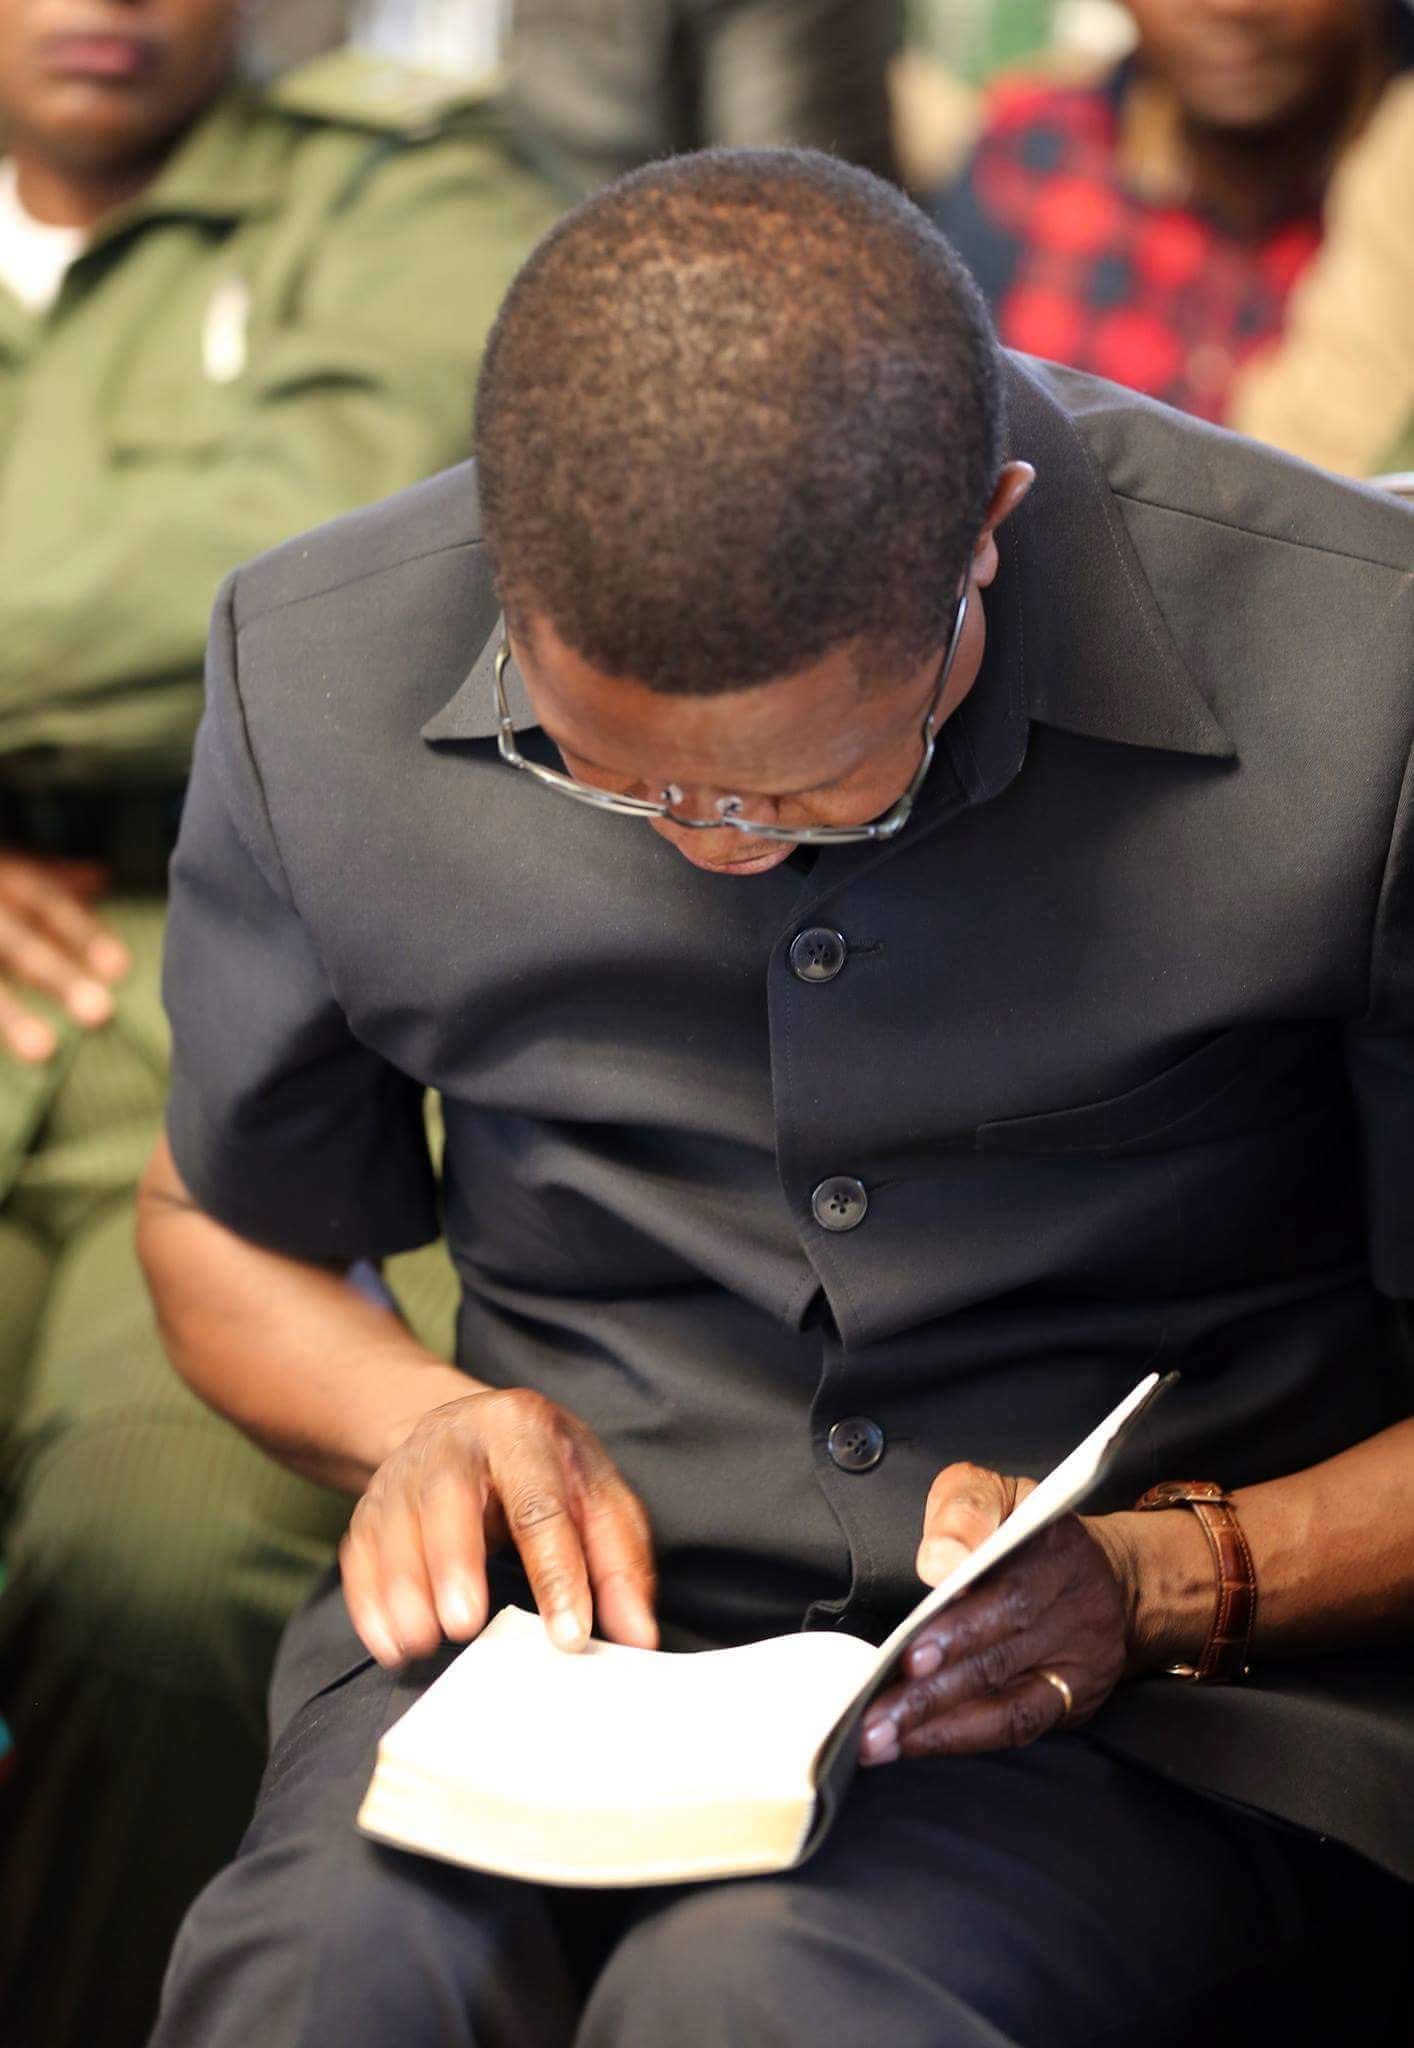 I don't want to be like Jesus, says Lungu